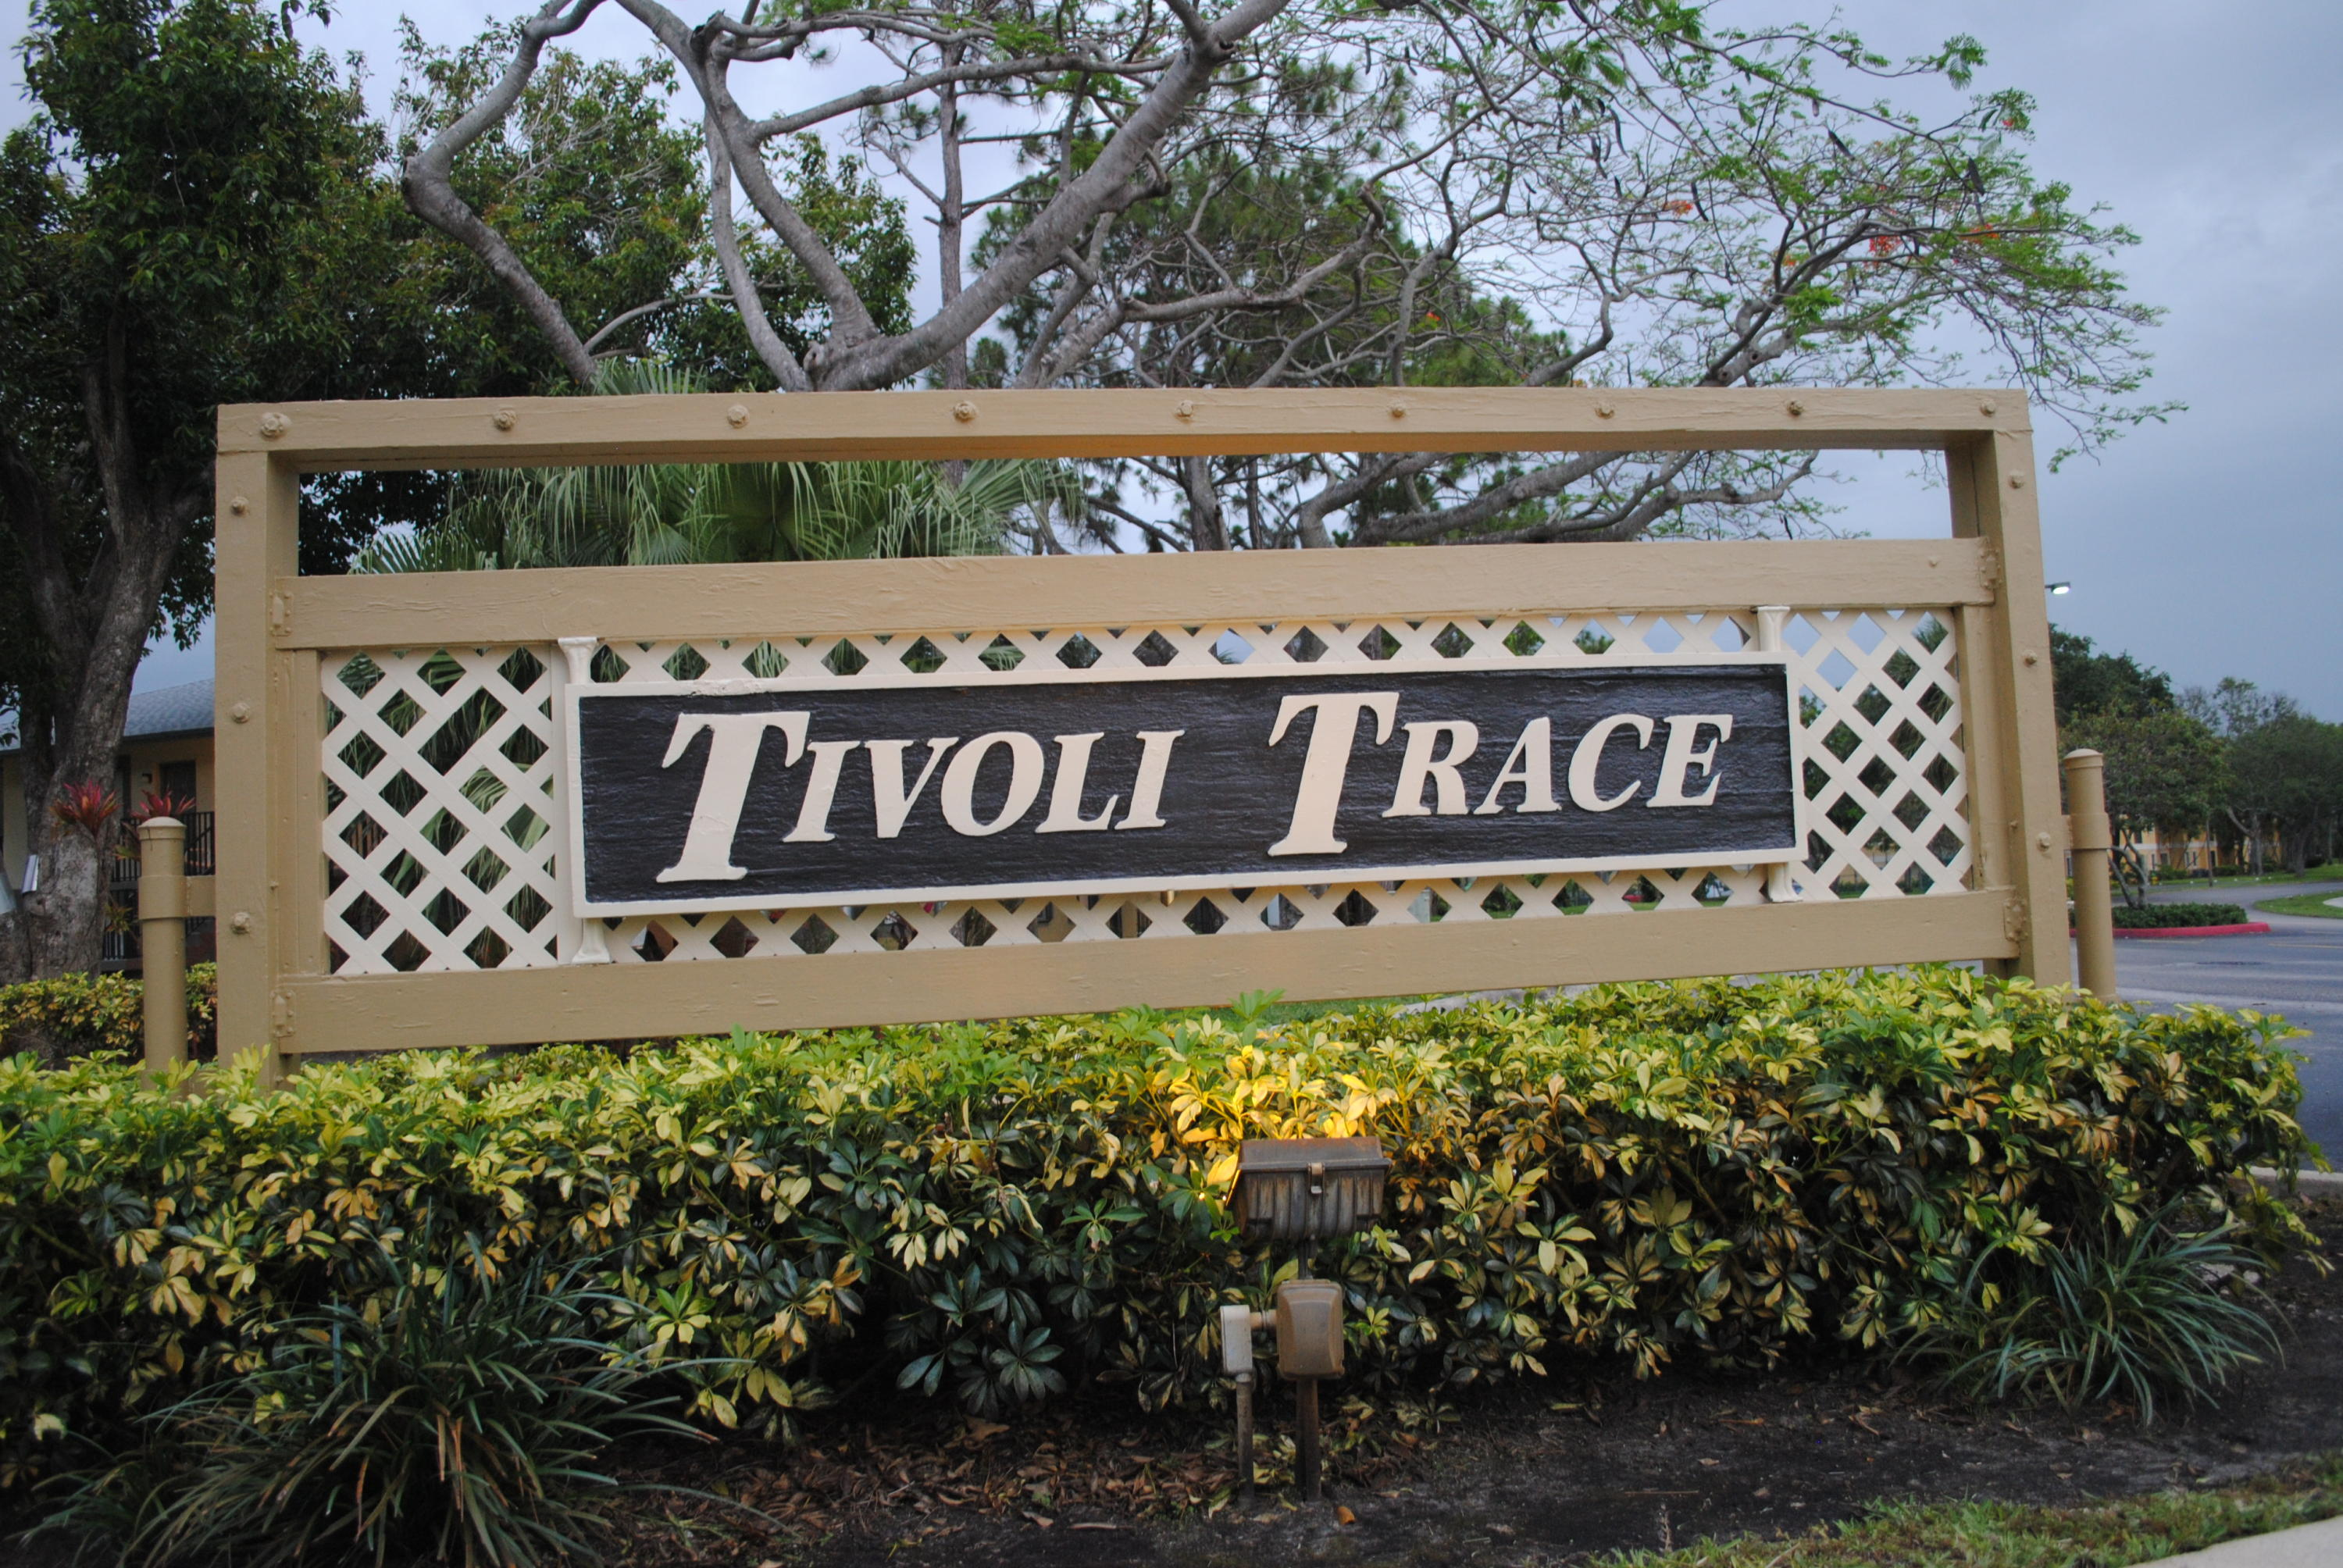 567 Tivoli Trace Circle, 105 - Deerfield Beach, Florida